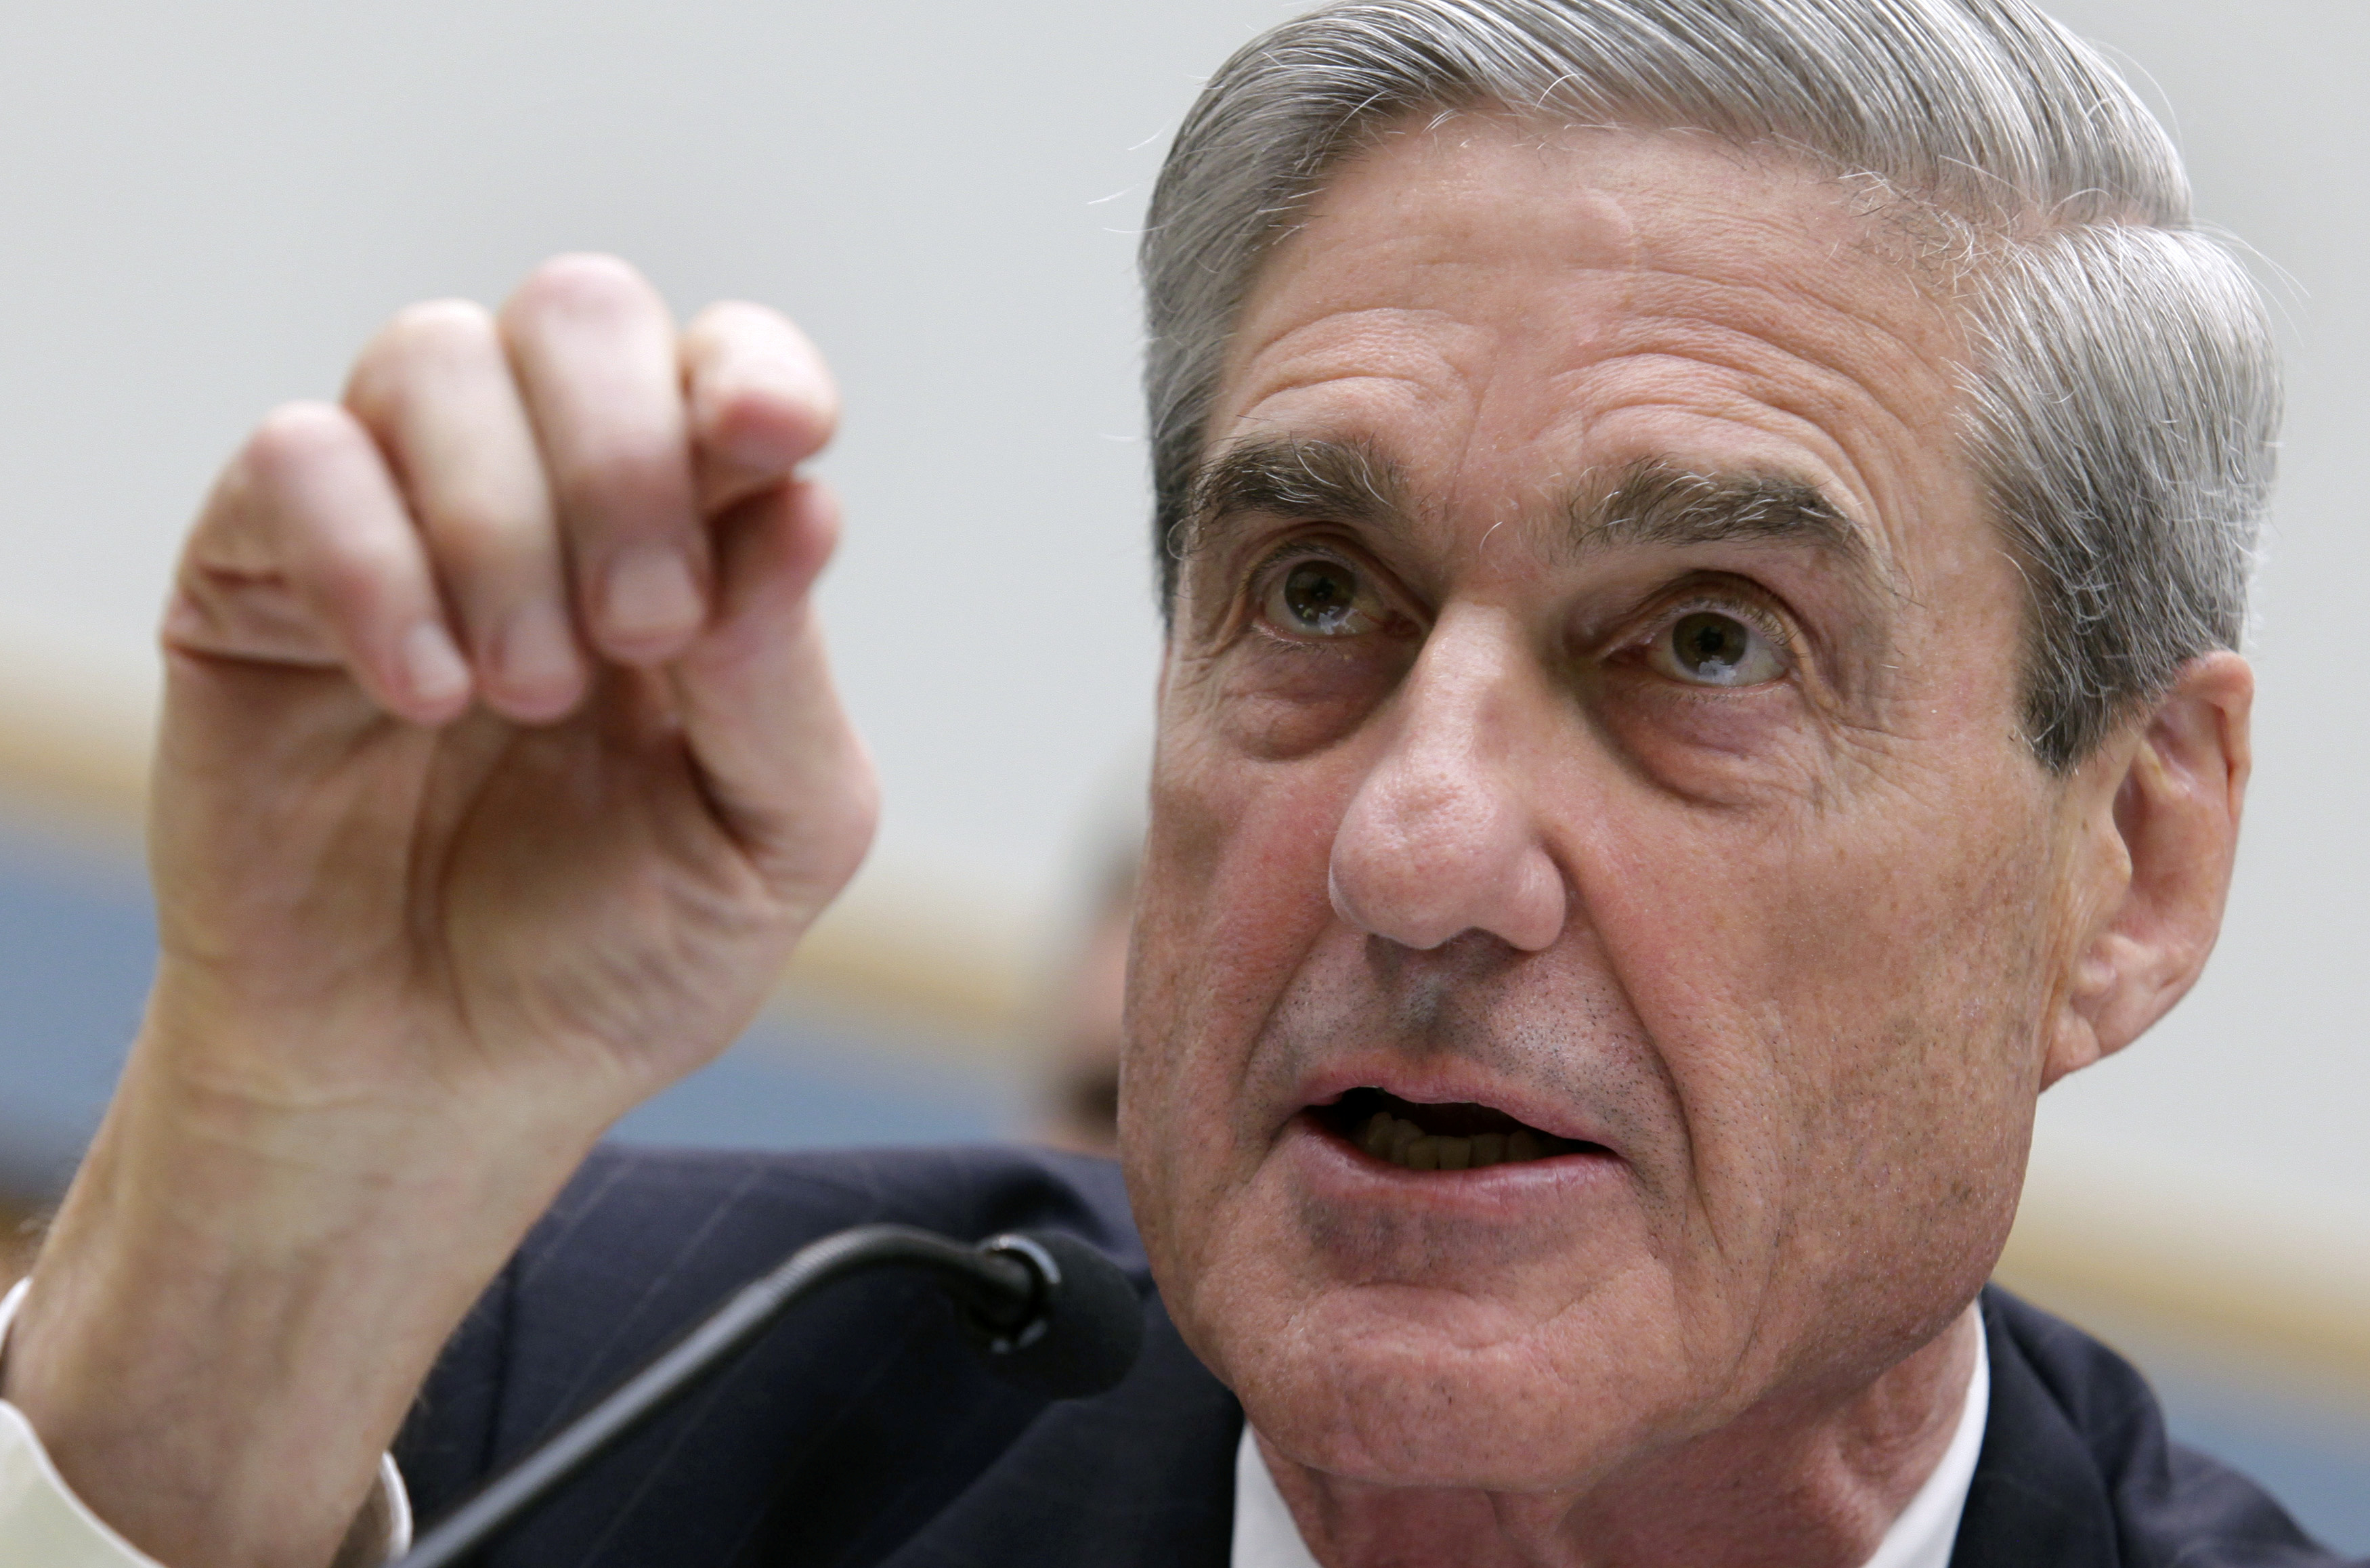 Robert Mueller, as FBI director, testifies before the House Judiciary Committee hearing on Federal Bureau of Investigation oversight on Capitol Hill in Washington June 13, 2013. REUTERS/Yuri Gripas